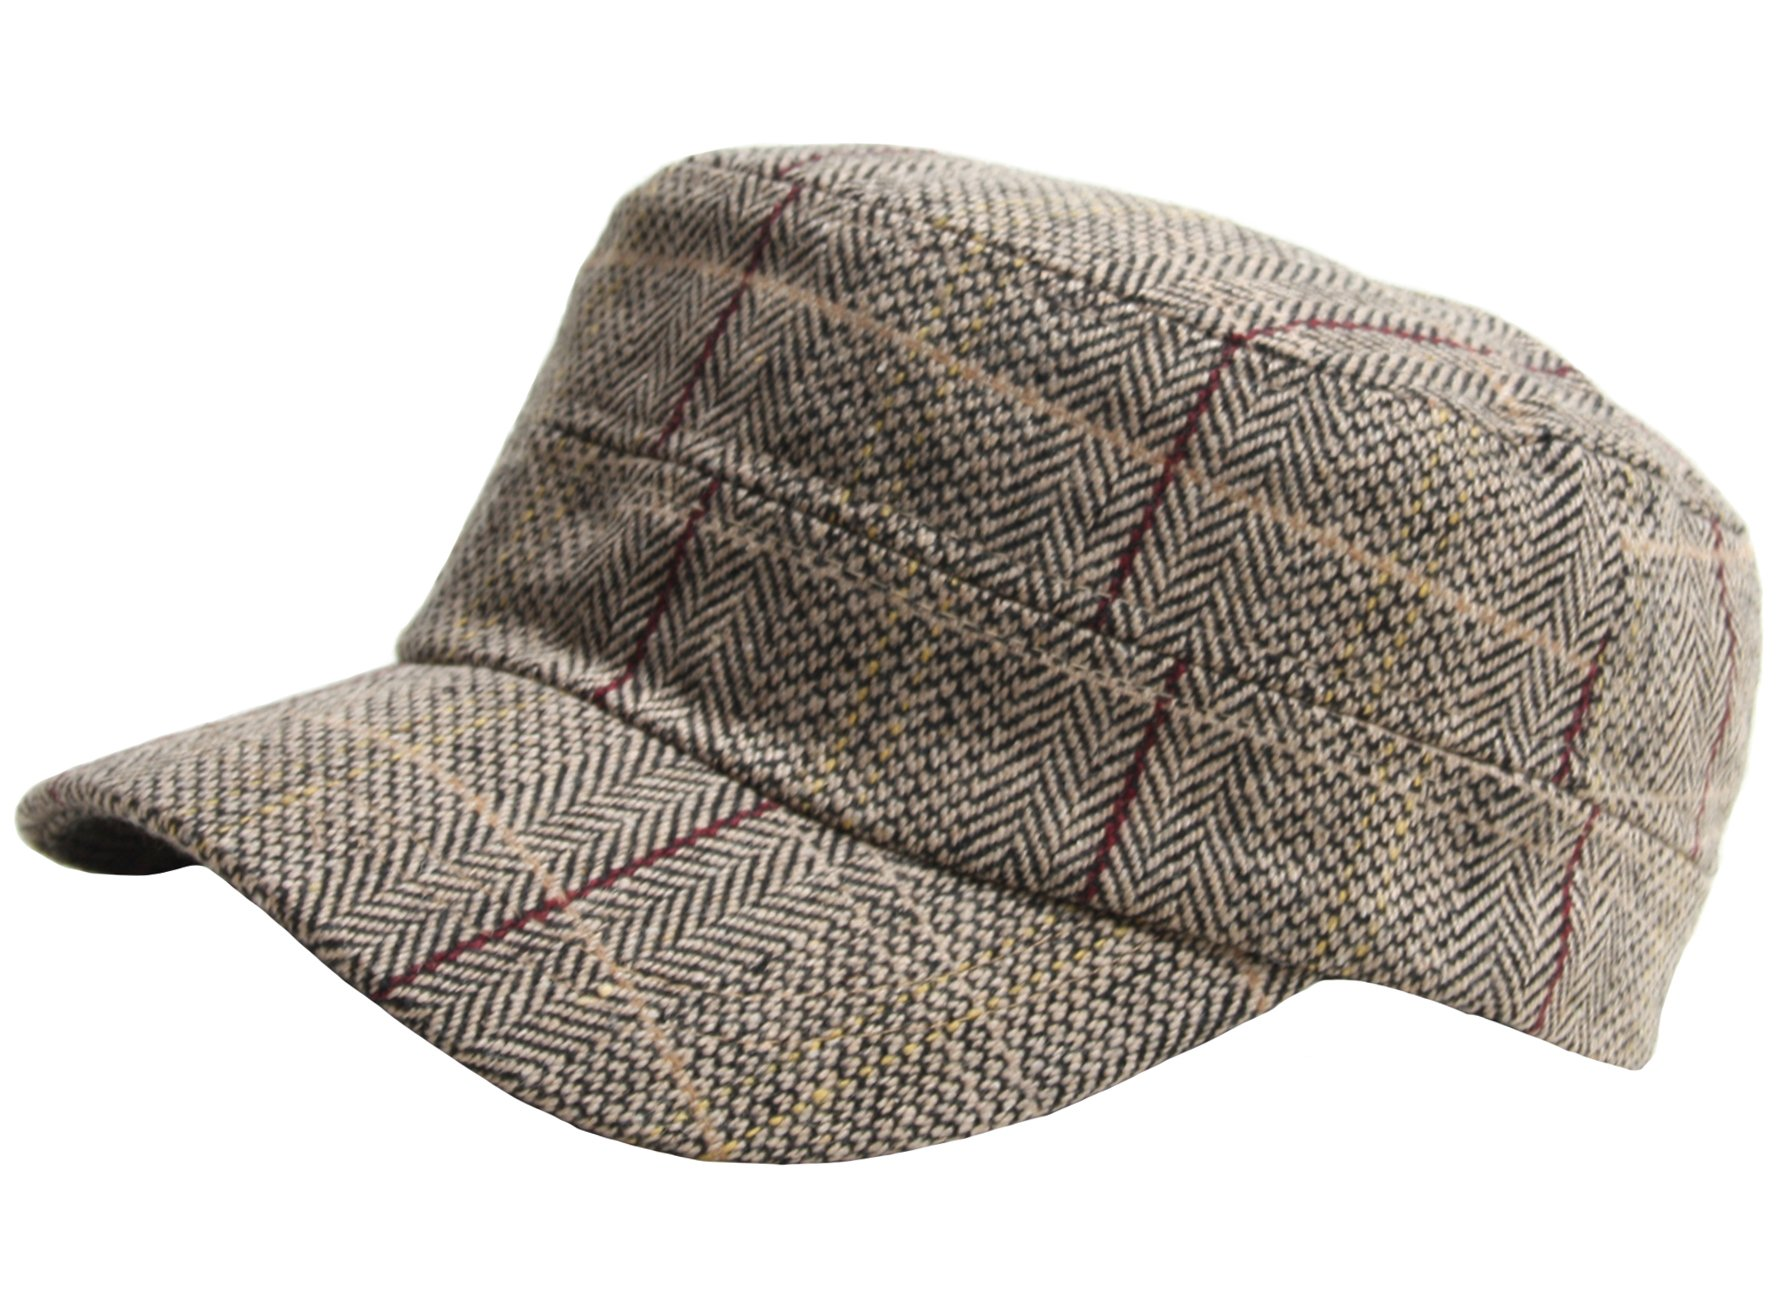 A115 Wool Herringbone Royal Check Pattern Style Club Army Cap Cadet Military Hat (Brown)